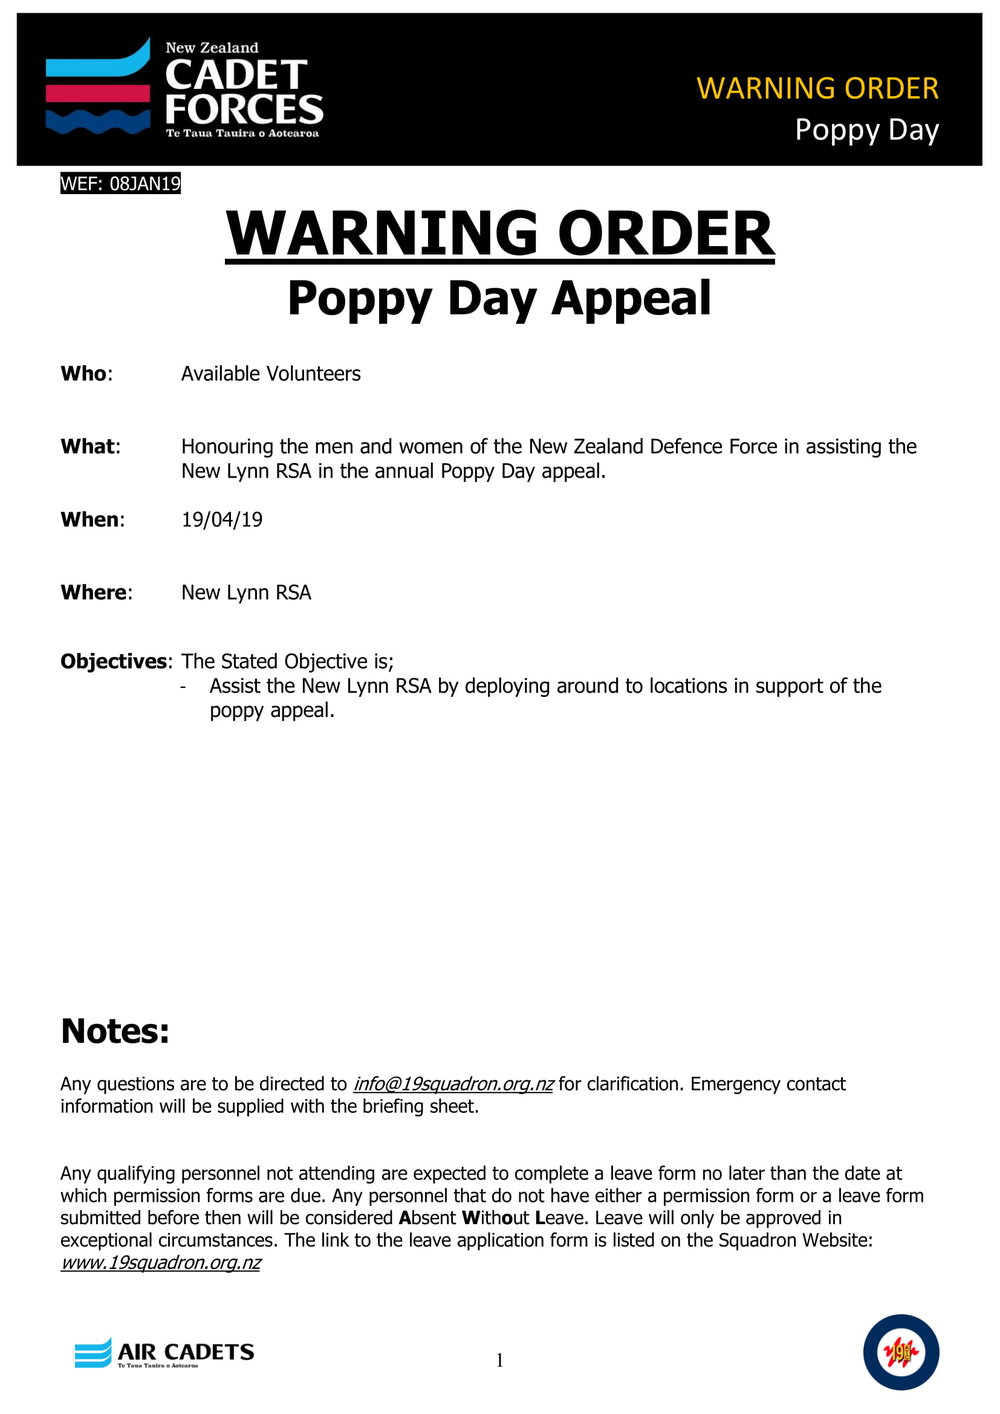 Poppy Day - Warning Order-1.jpg